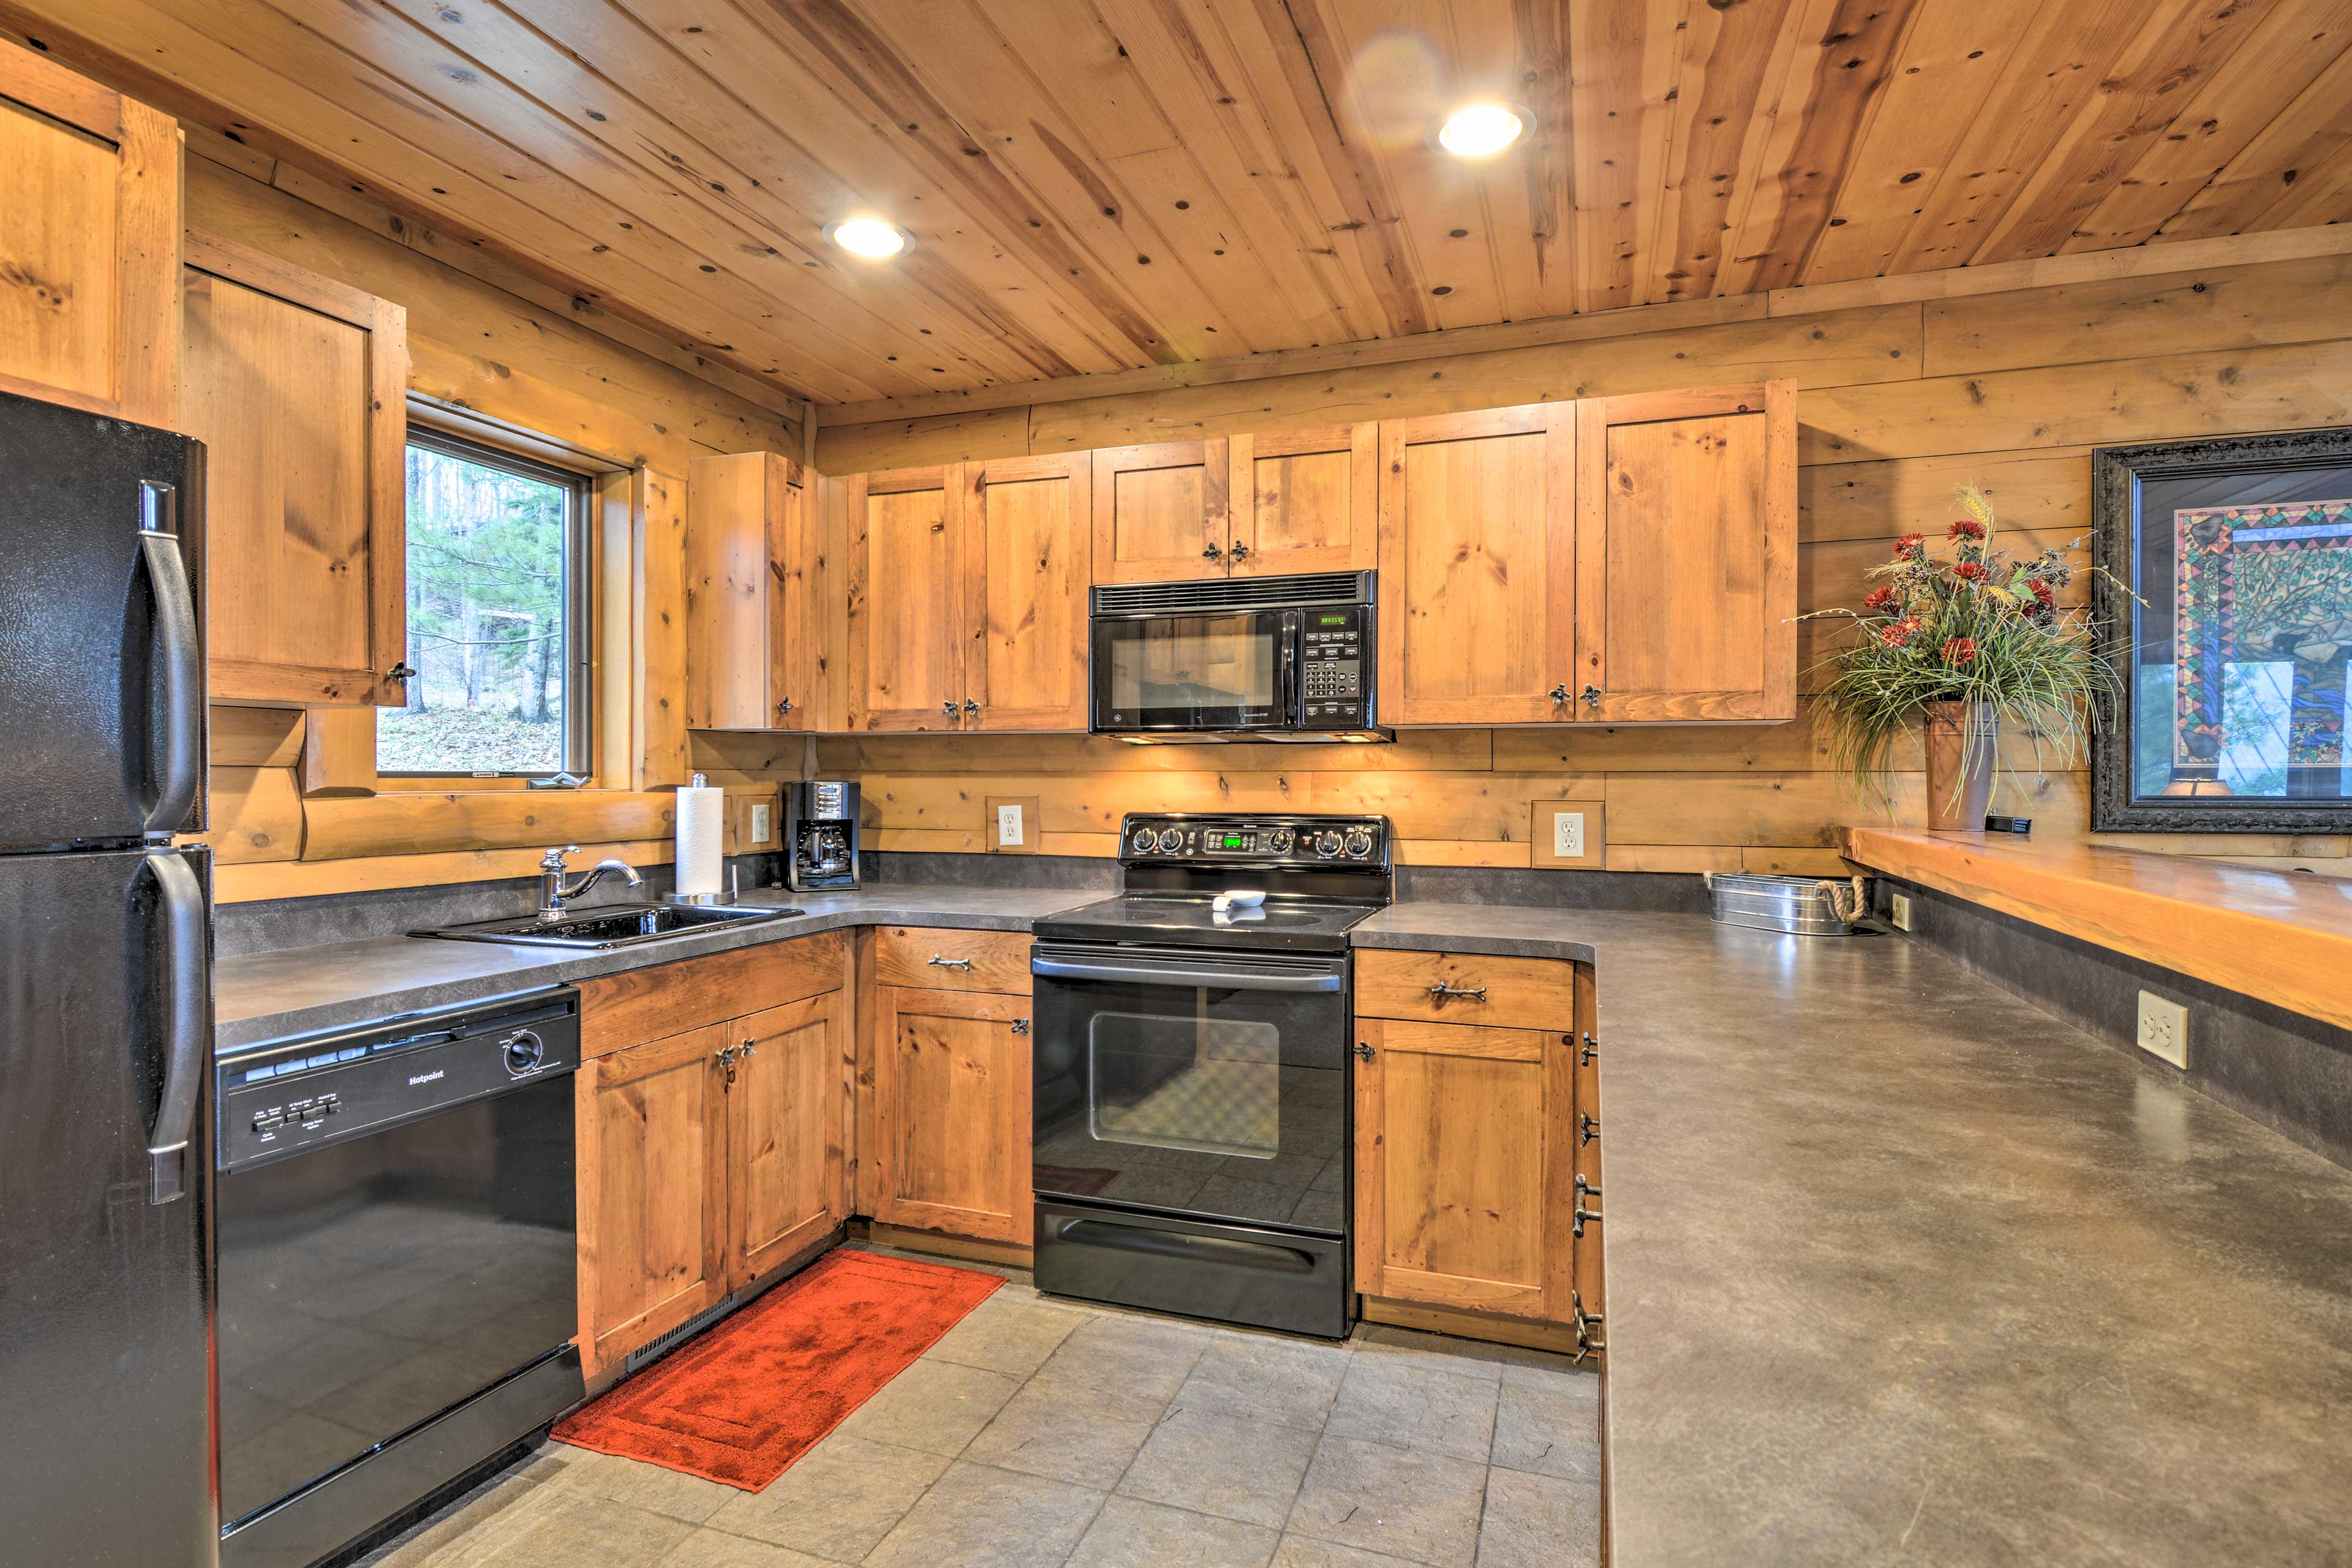 Ample counter space allows you to spread out while you prepare meals.